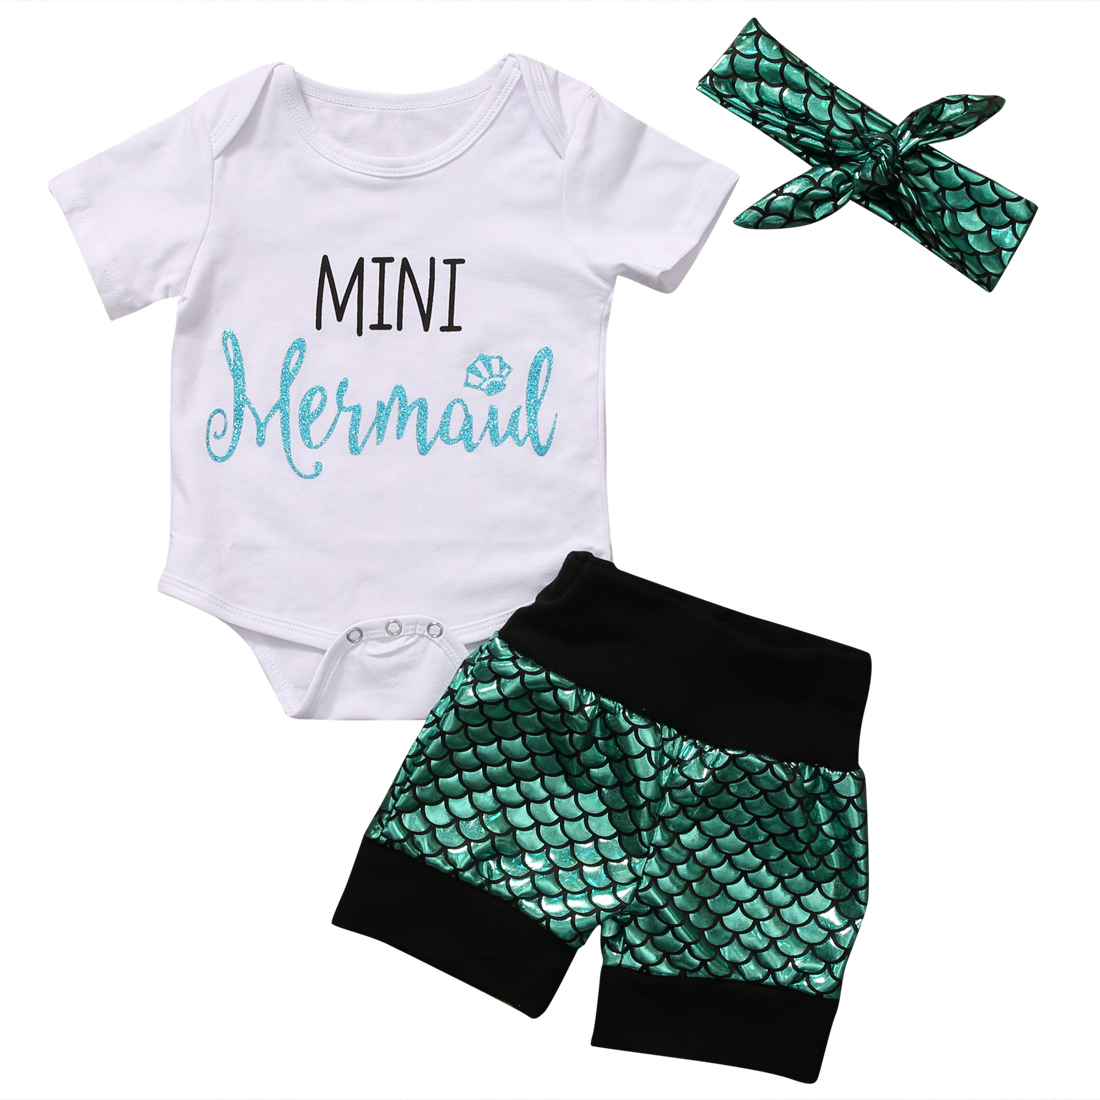 Newborn Toddler Baby Girls Clothes Mermaid Tops+Bottom+Headband 3PCS Outfits Set